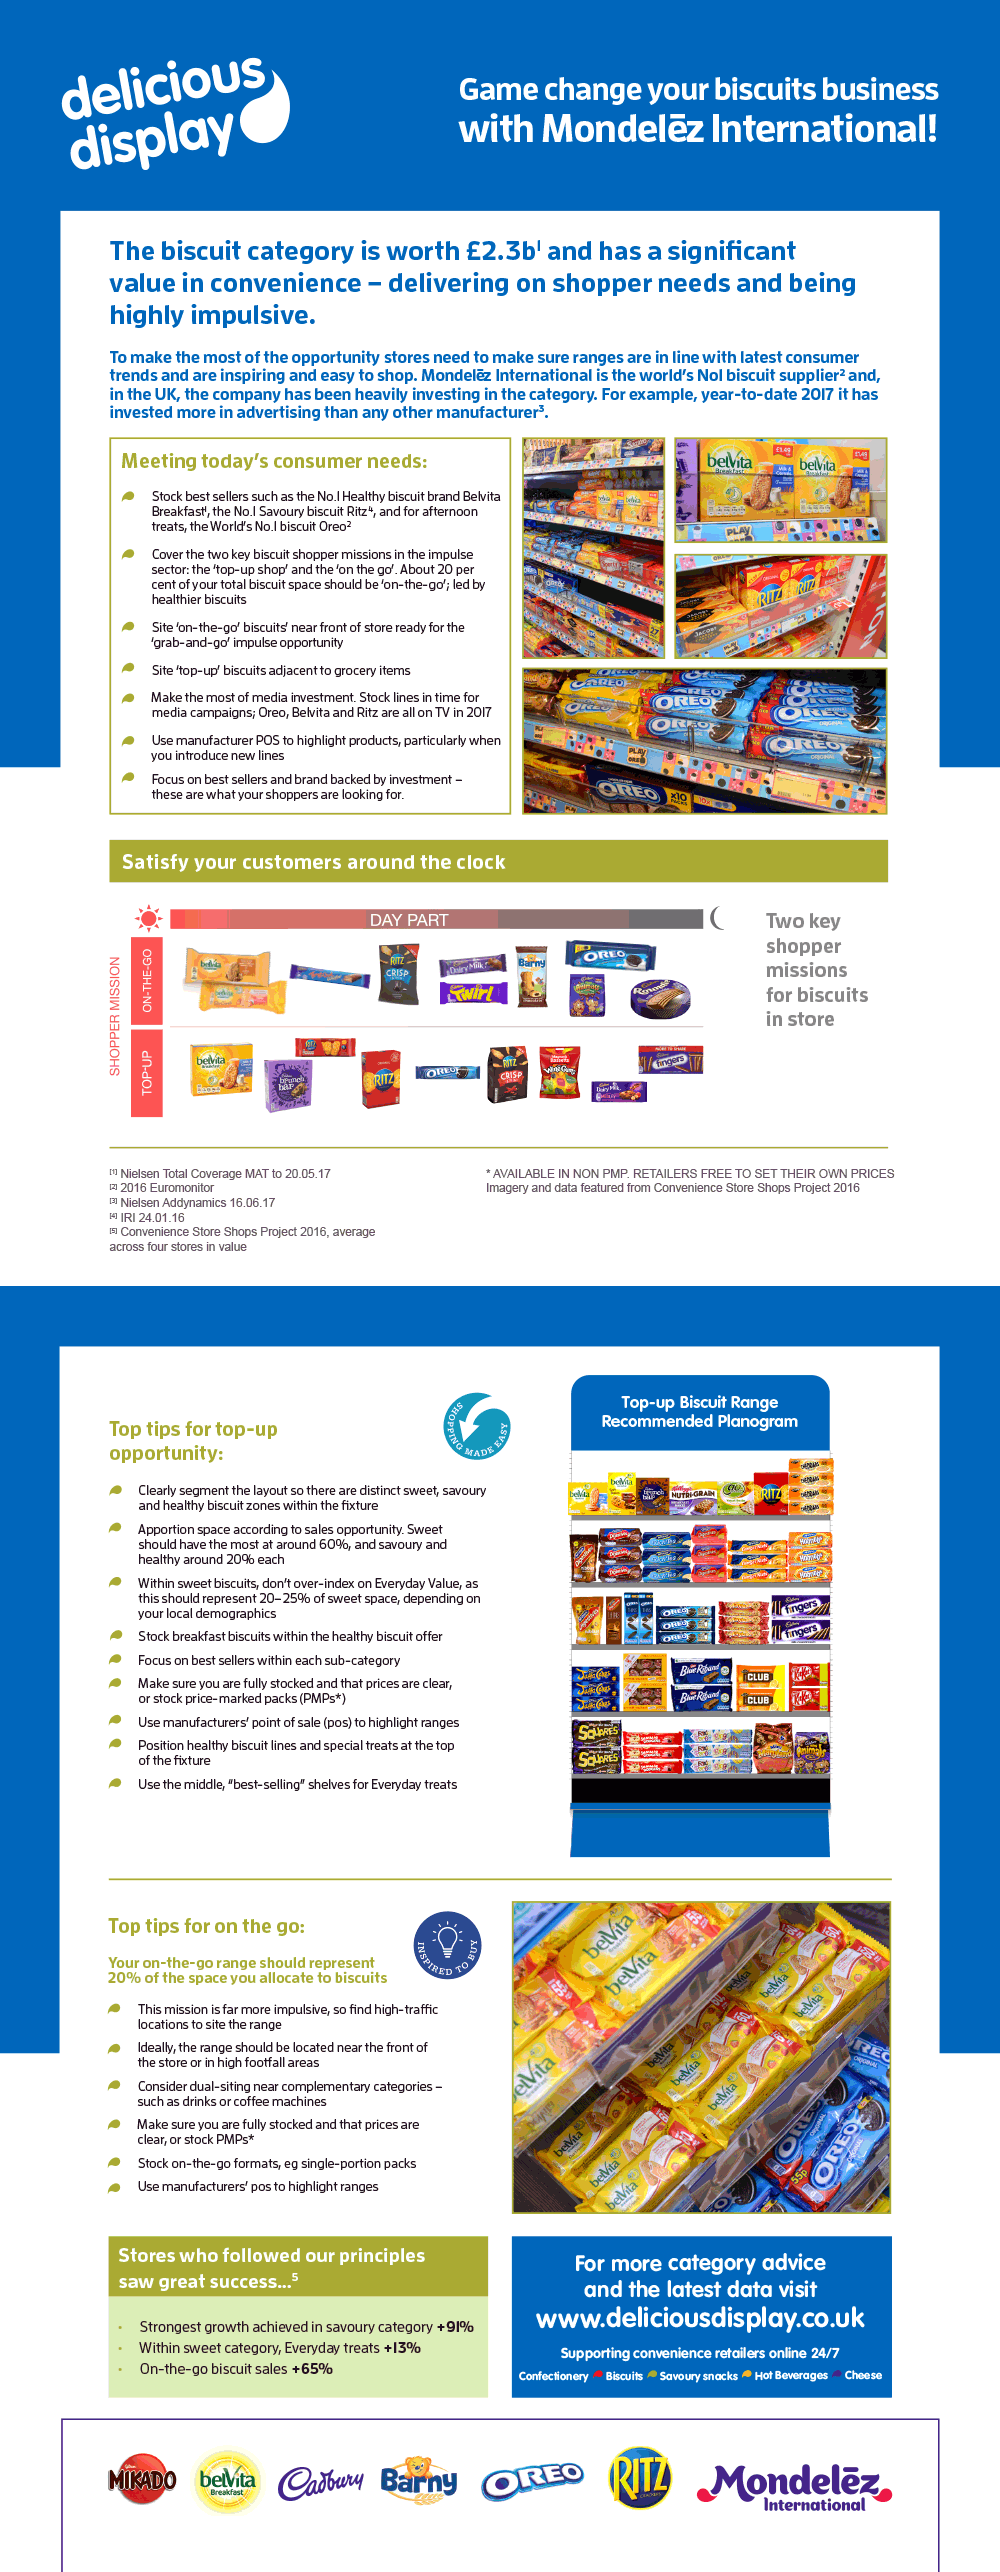 Biscuits category management advice